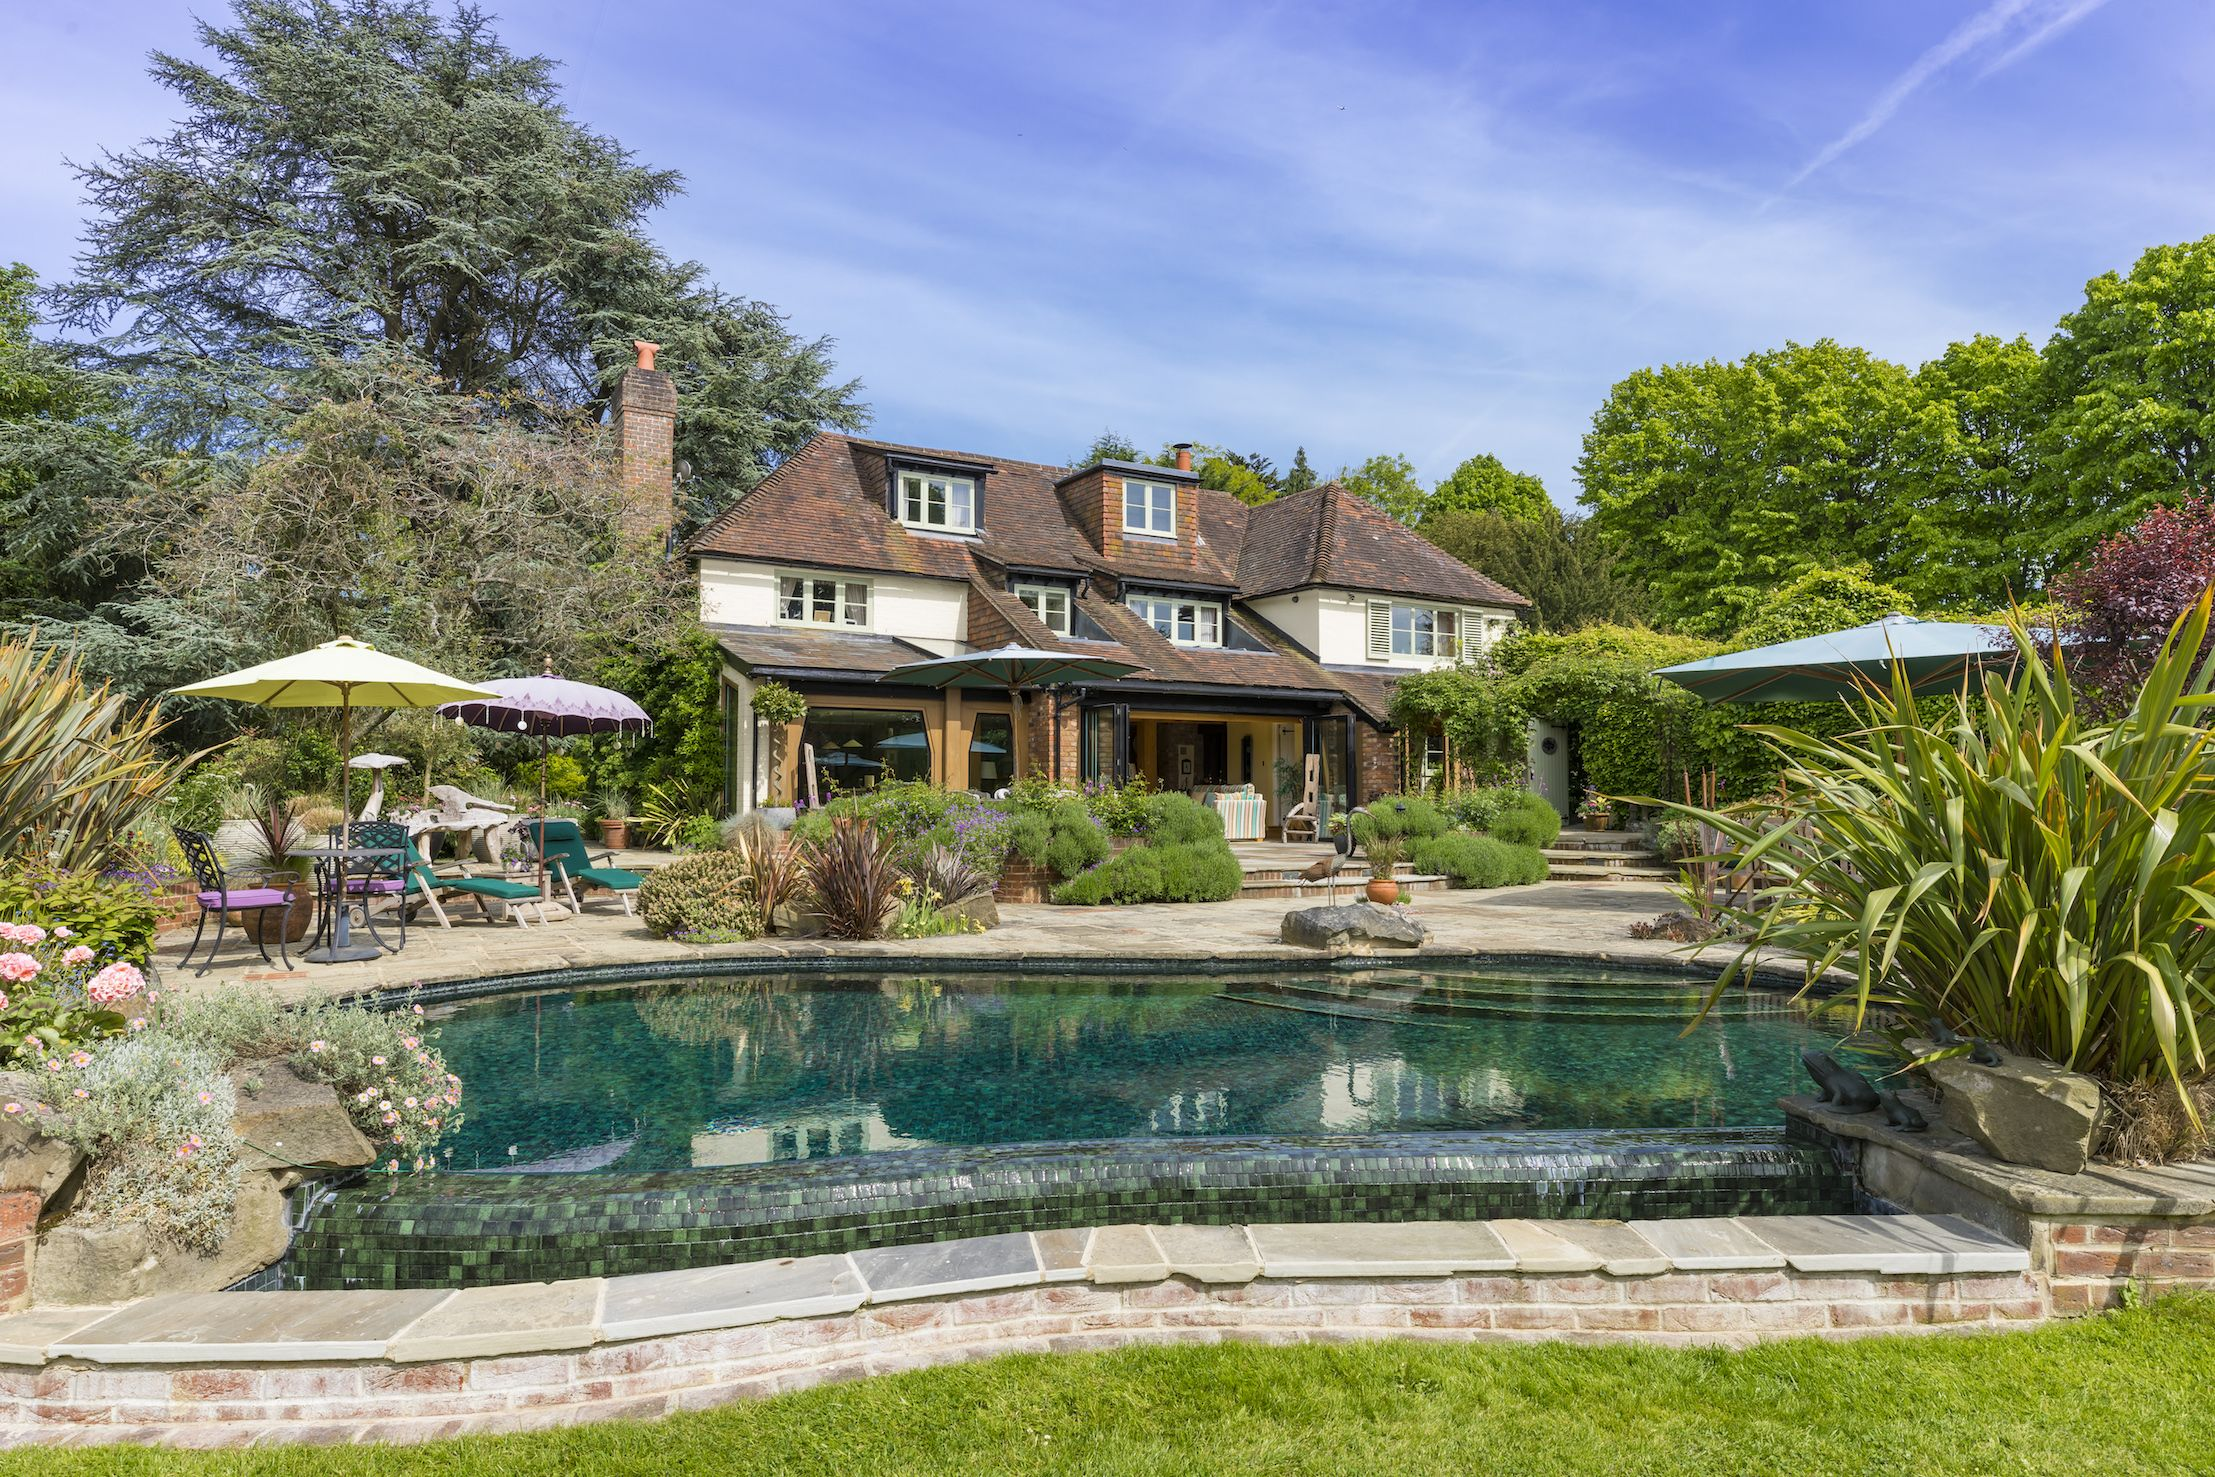 17th Century Country House With Swimming Pool For Sale In ...